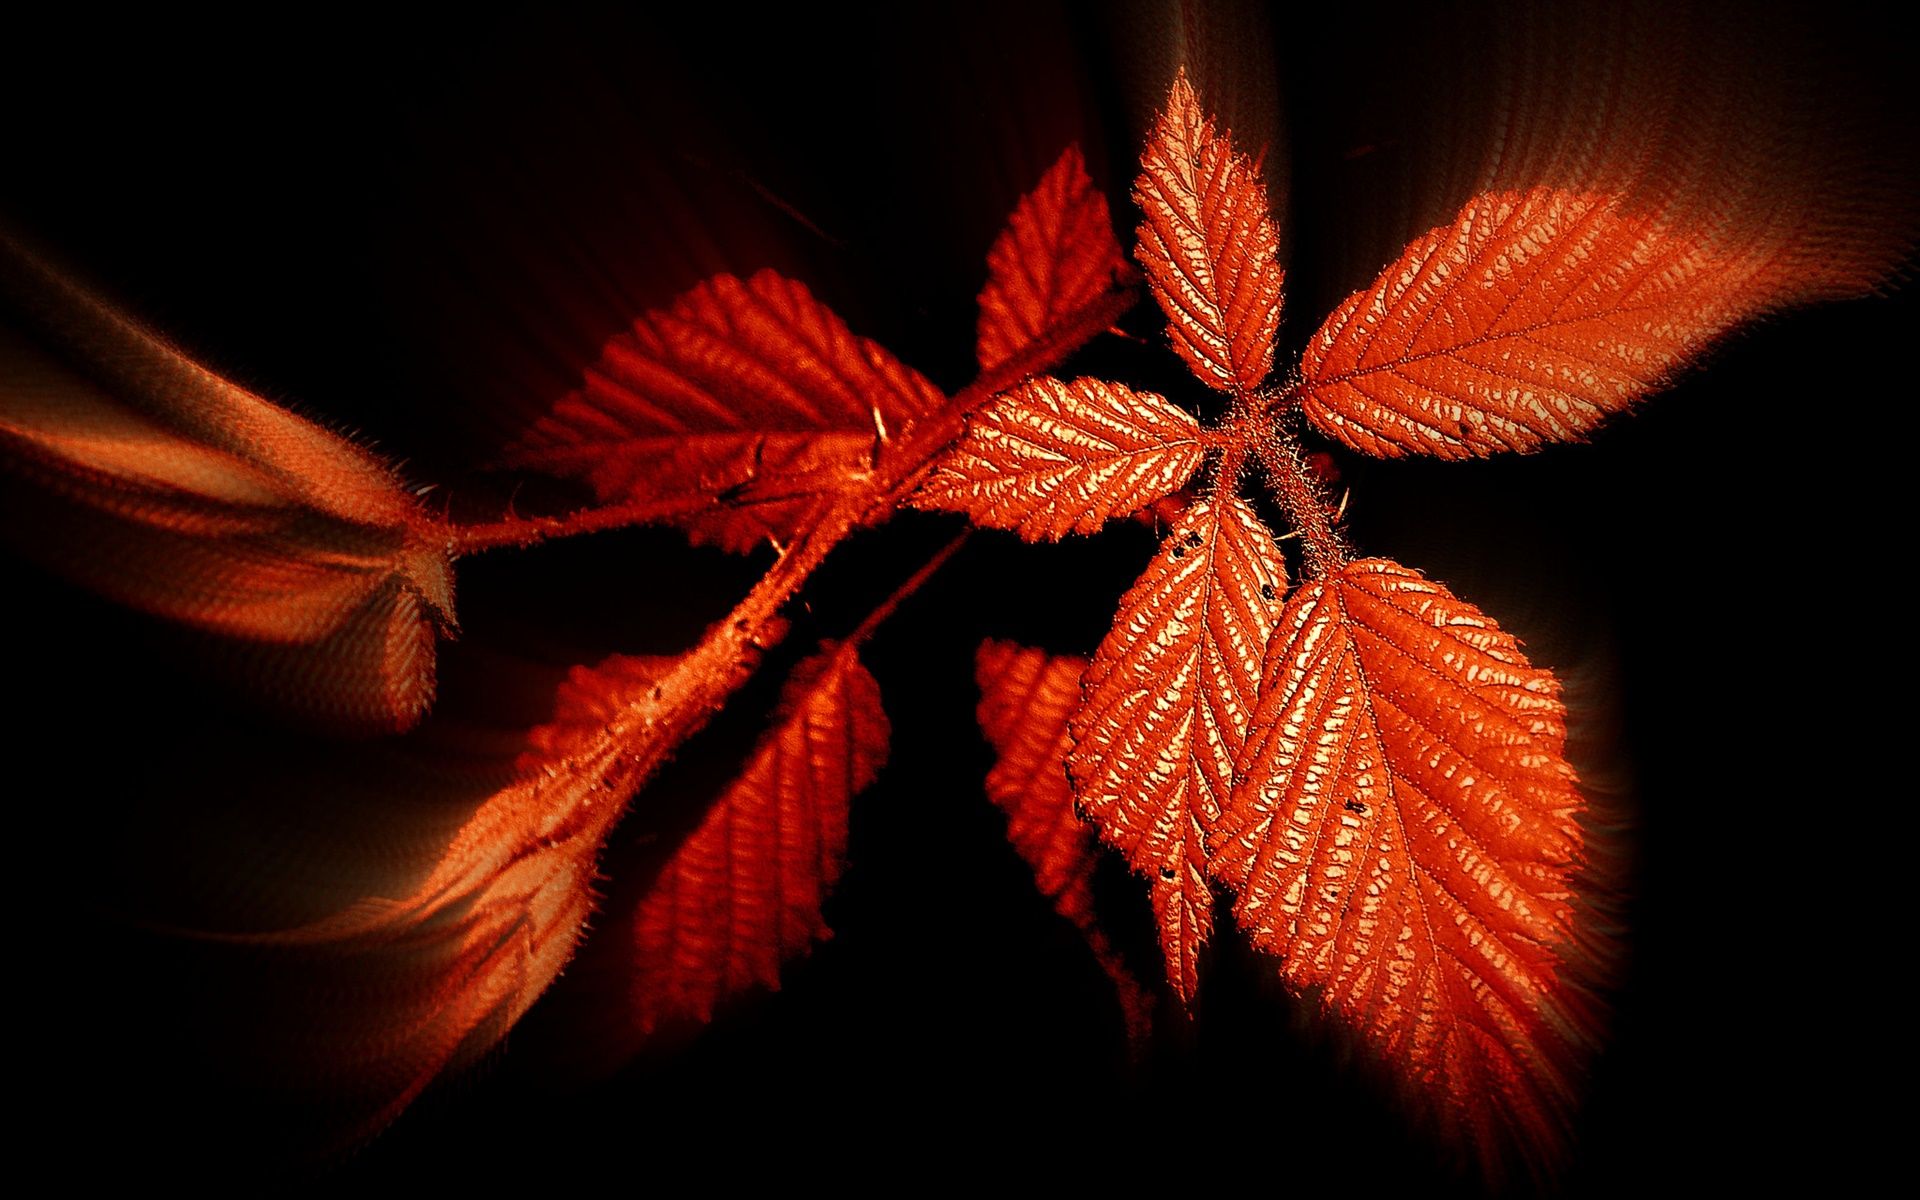 Autumn, red leaves, black background 1920x1200 wallpaper